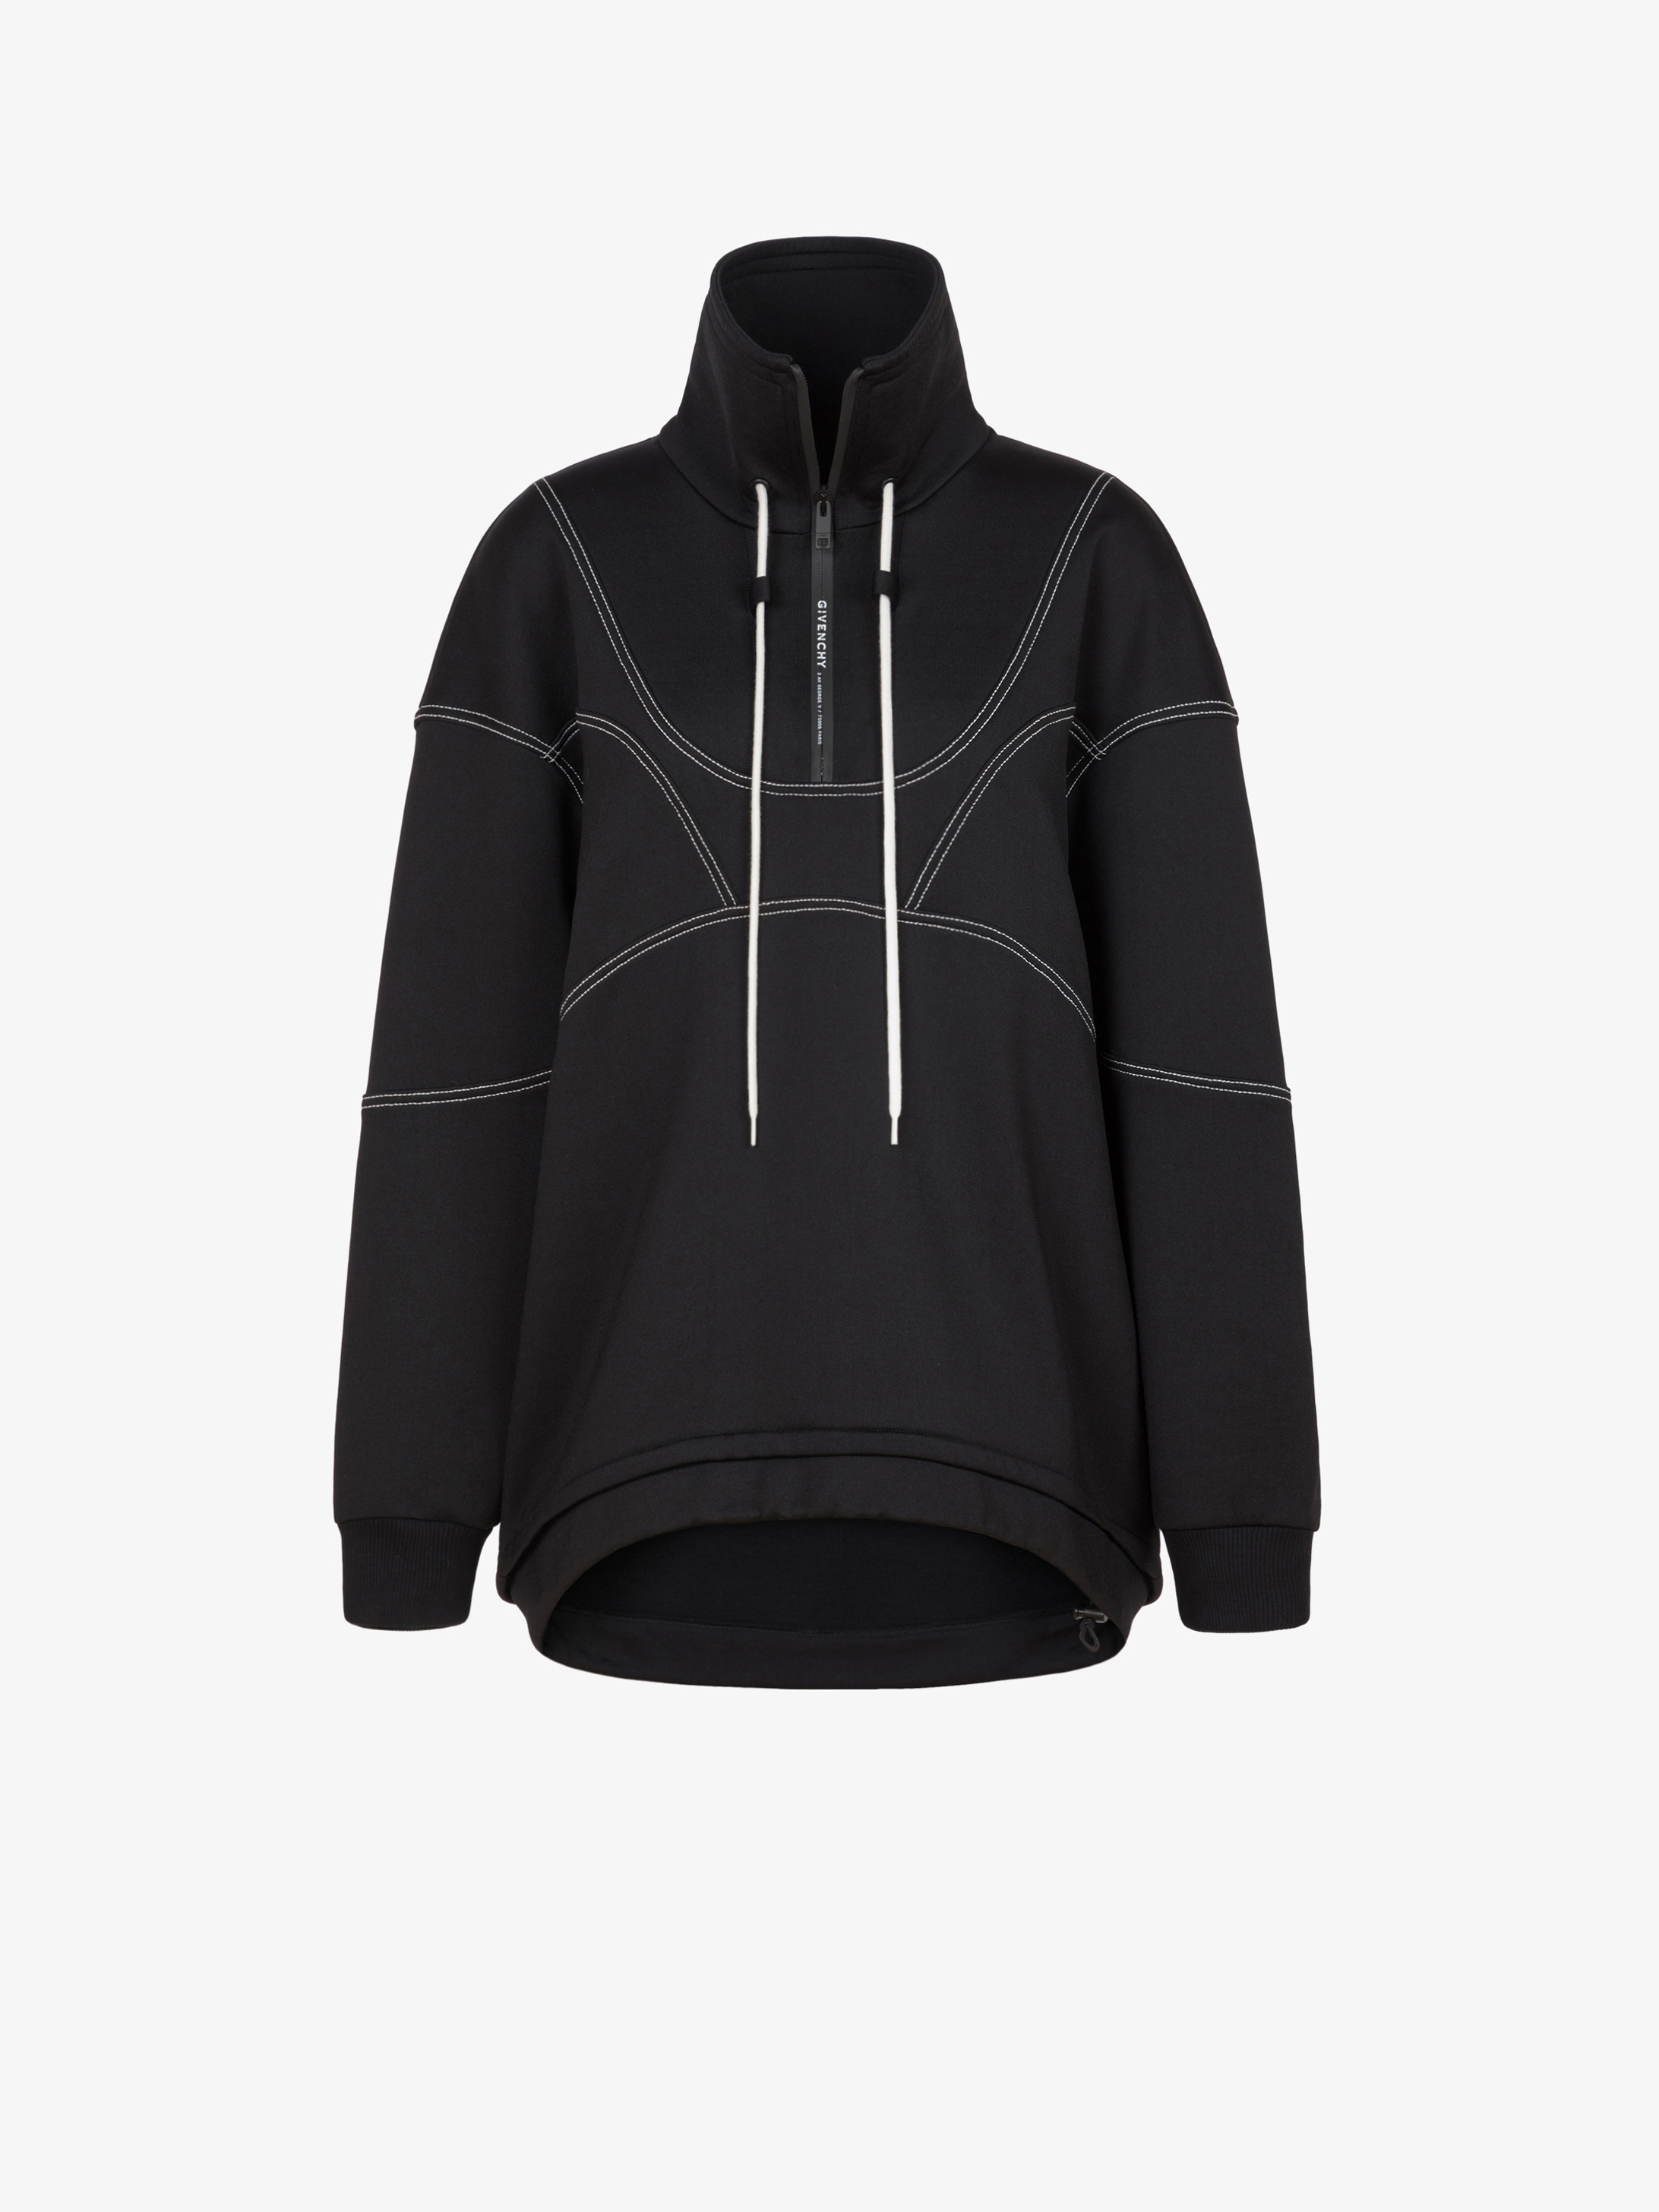 Oversized sweatshirt with contrasted stitching